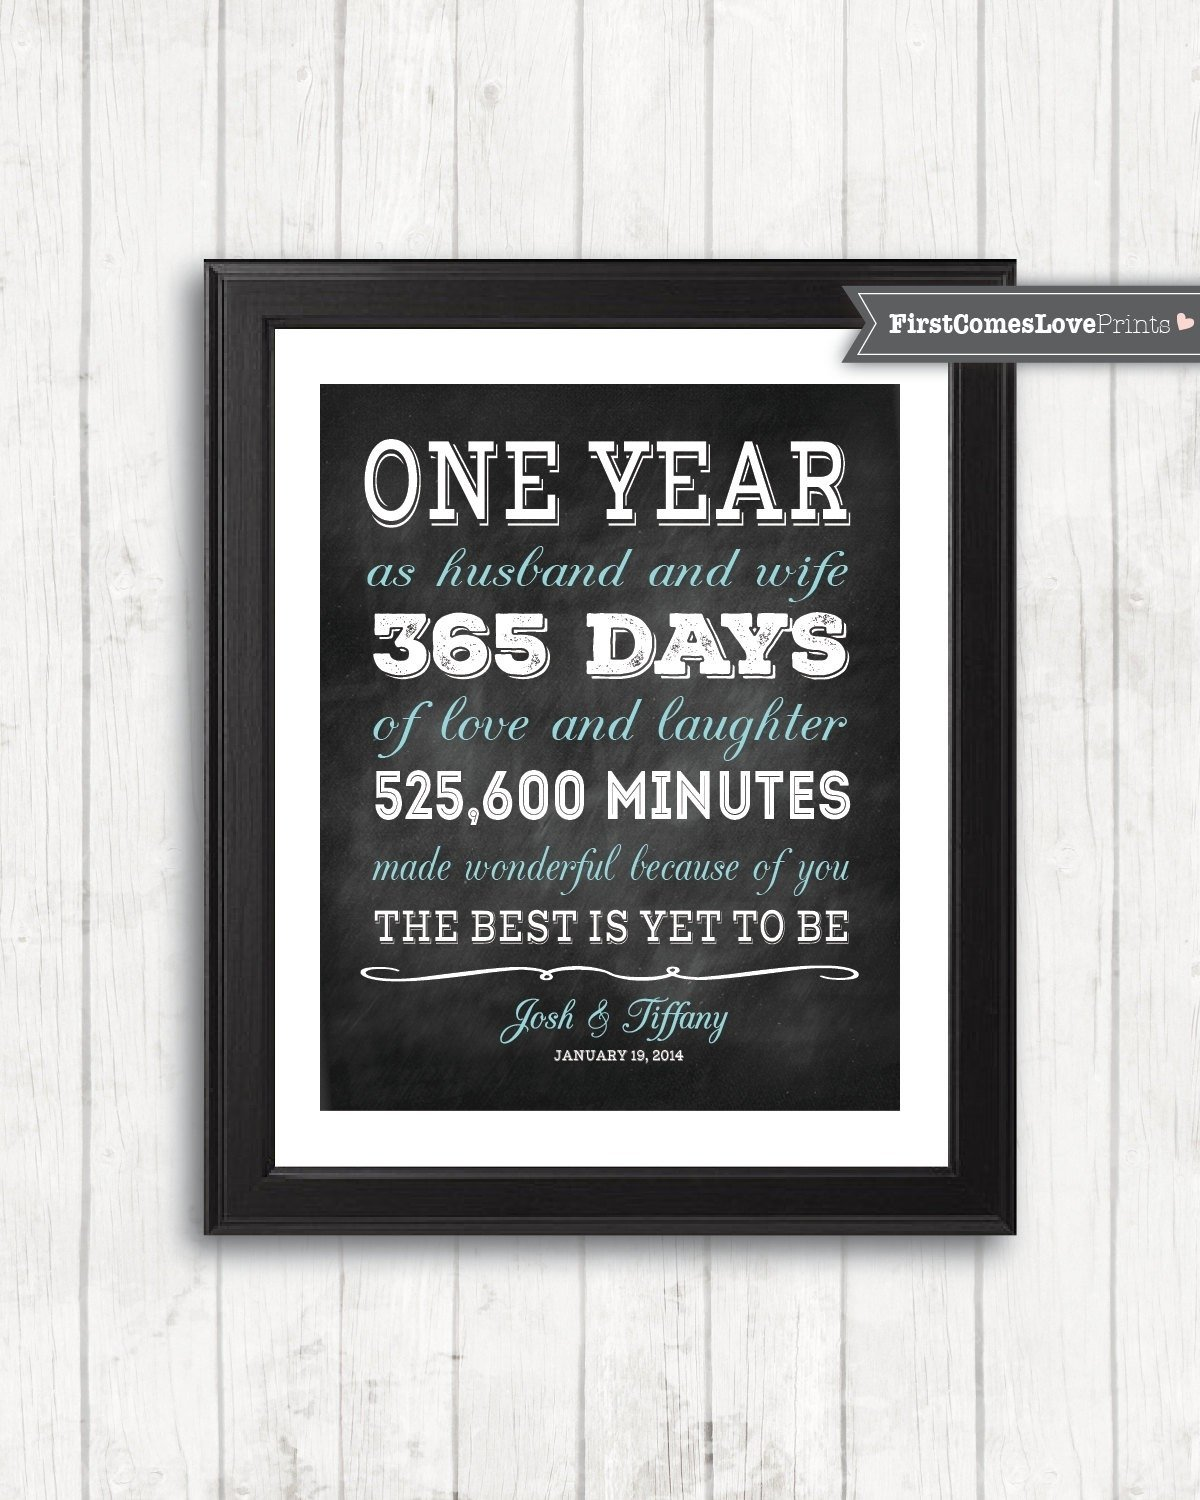 10 Stunning First Anniversary Gift Ideas For Him best picture 1st wedding anniversary gift ideas him small family 2021